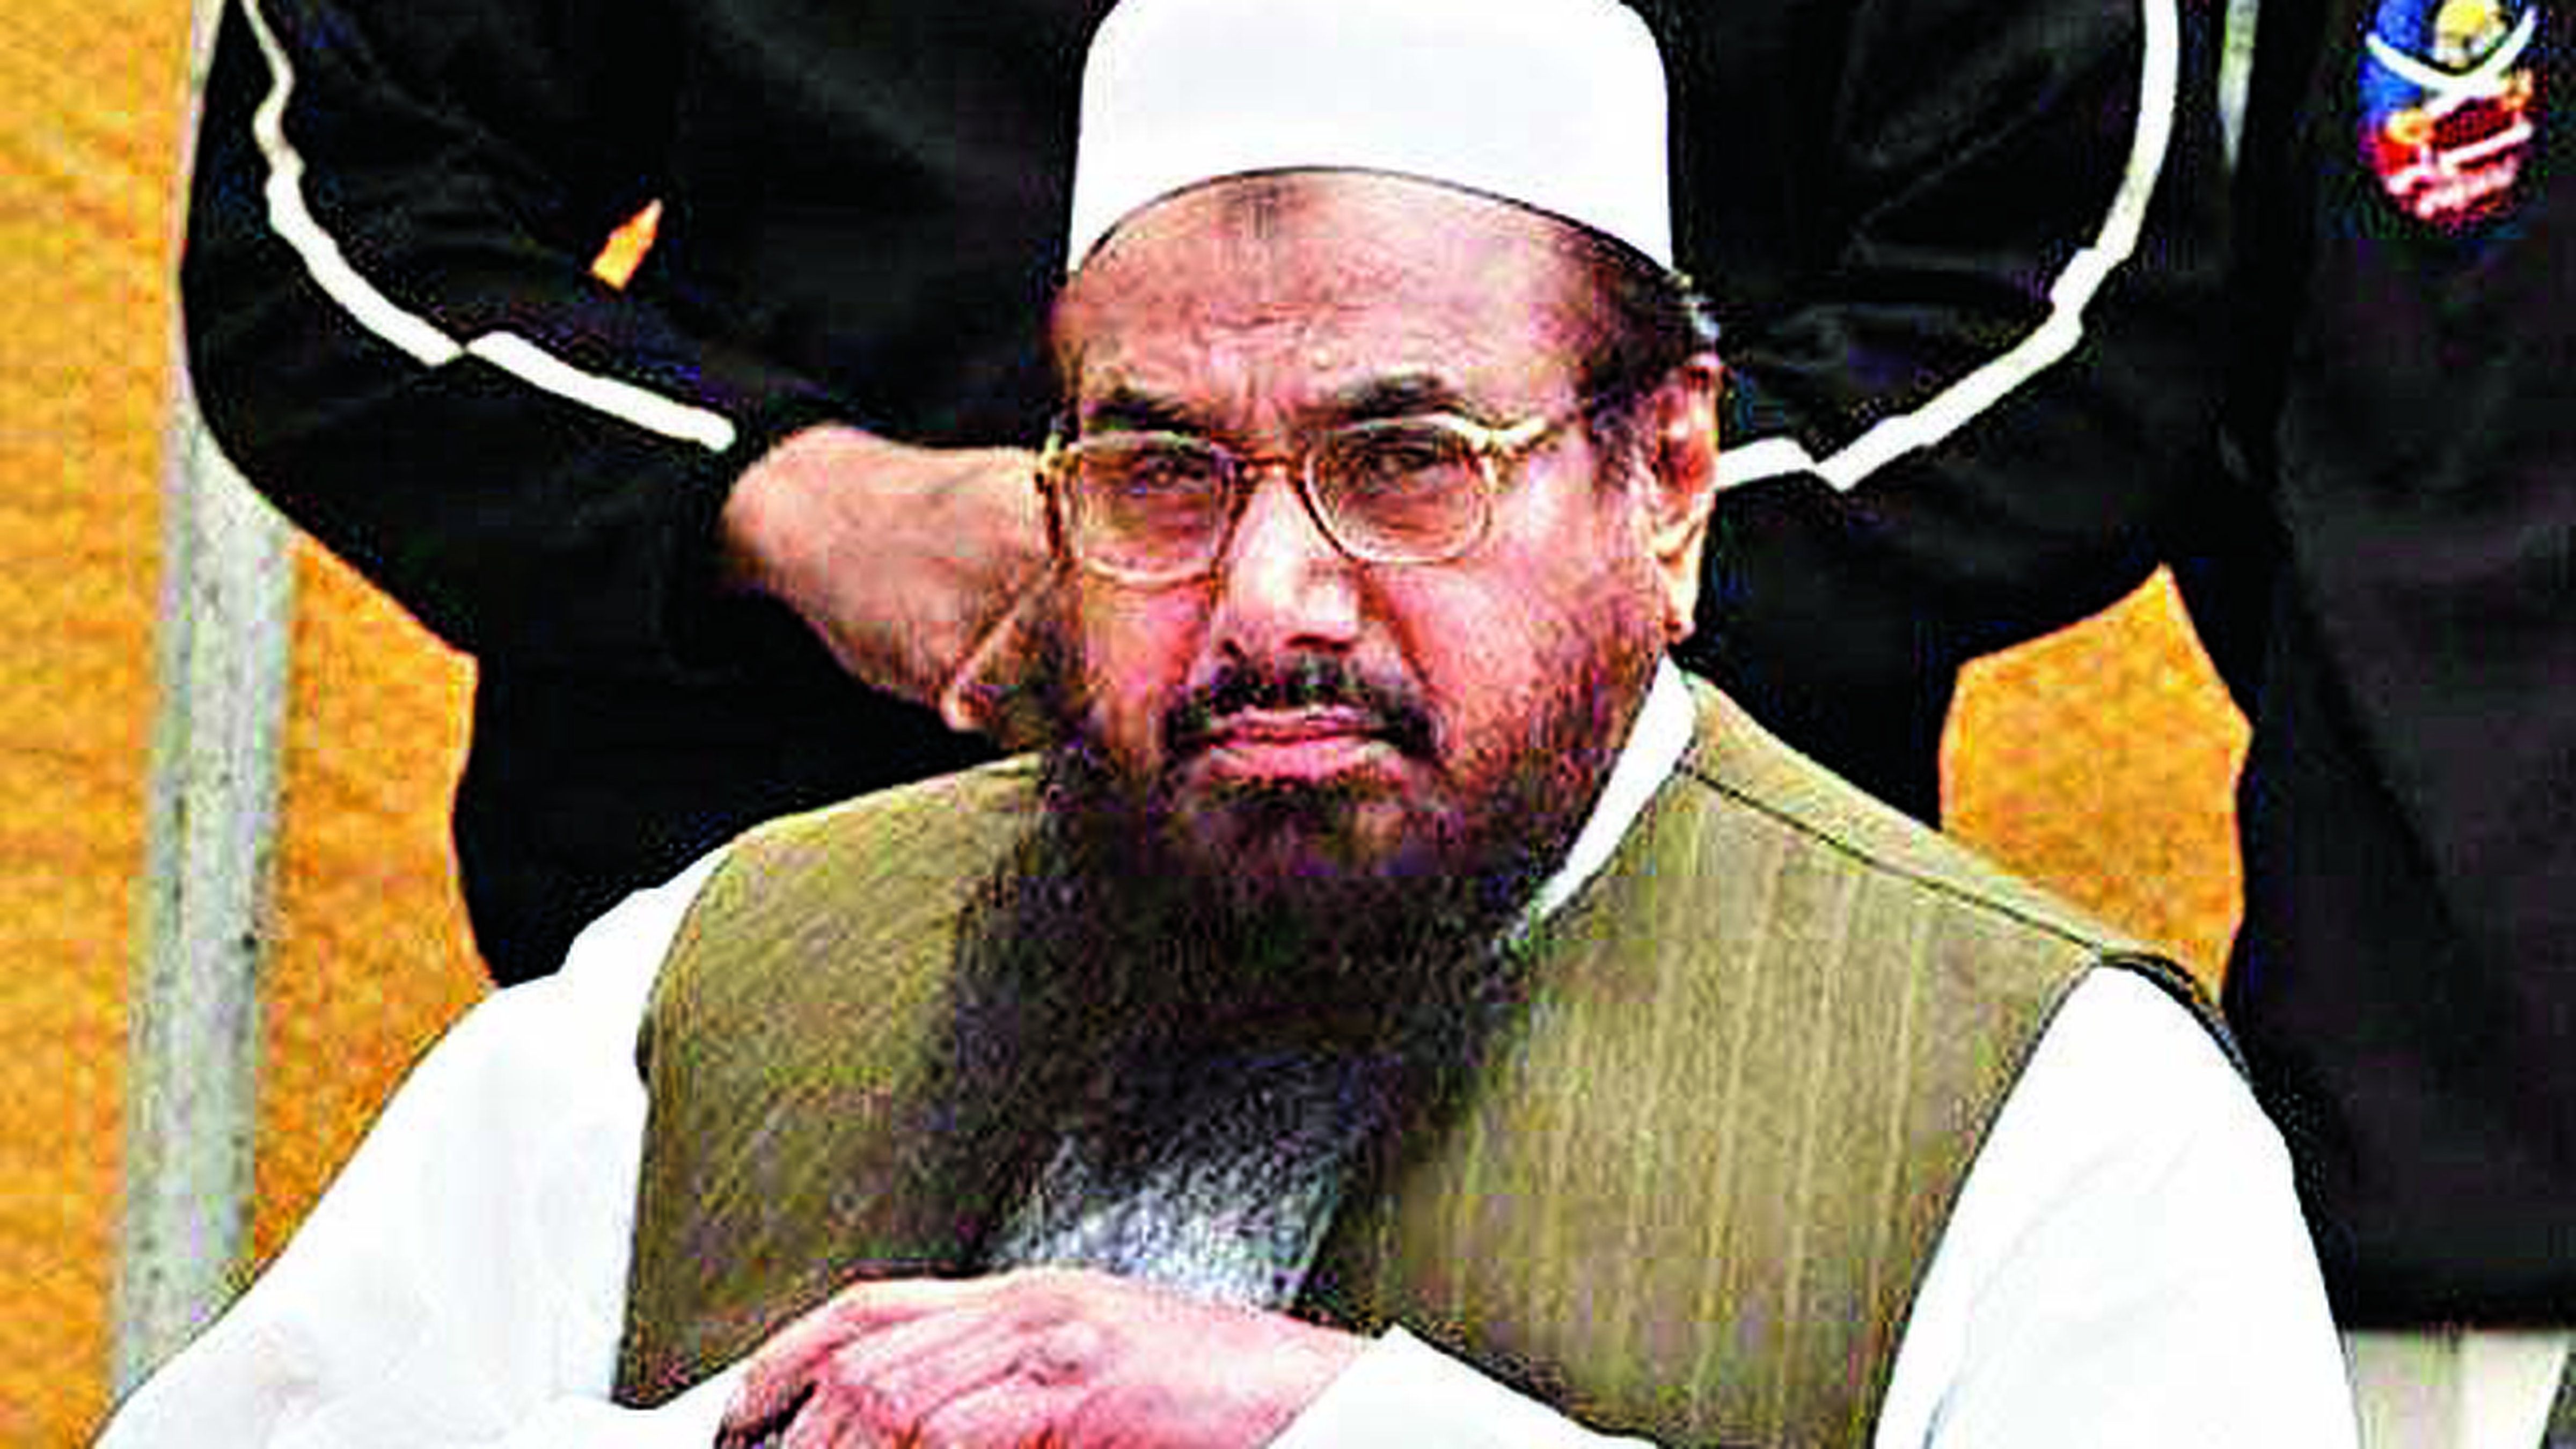 On March 7, PTI broke the story about the UN rejecting an appeal by 26/11 Mumbai attacks mastermind Hafiz Saeed to remove his name from the list of banned terrorists.